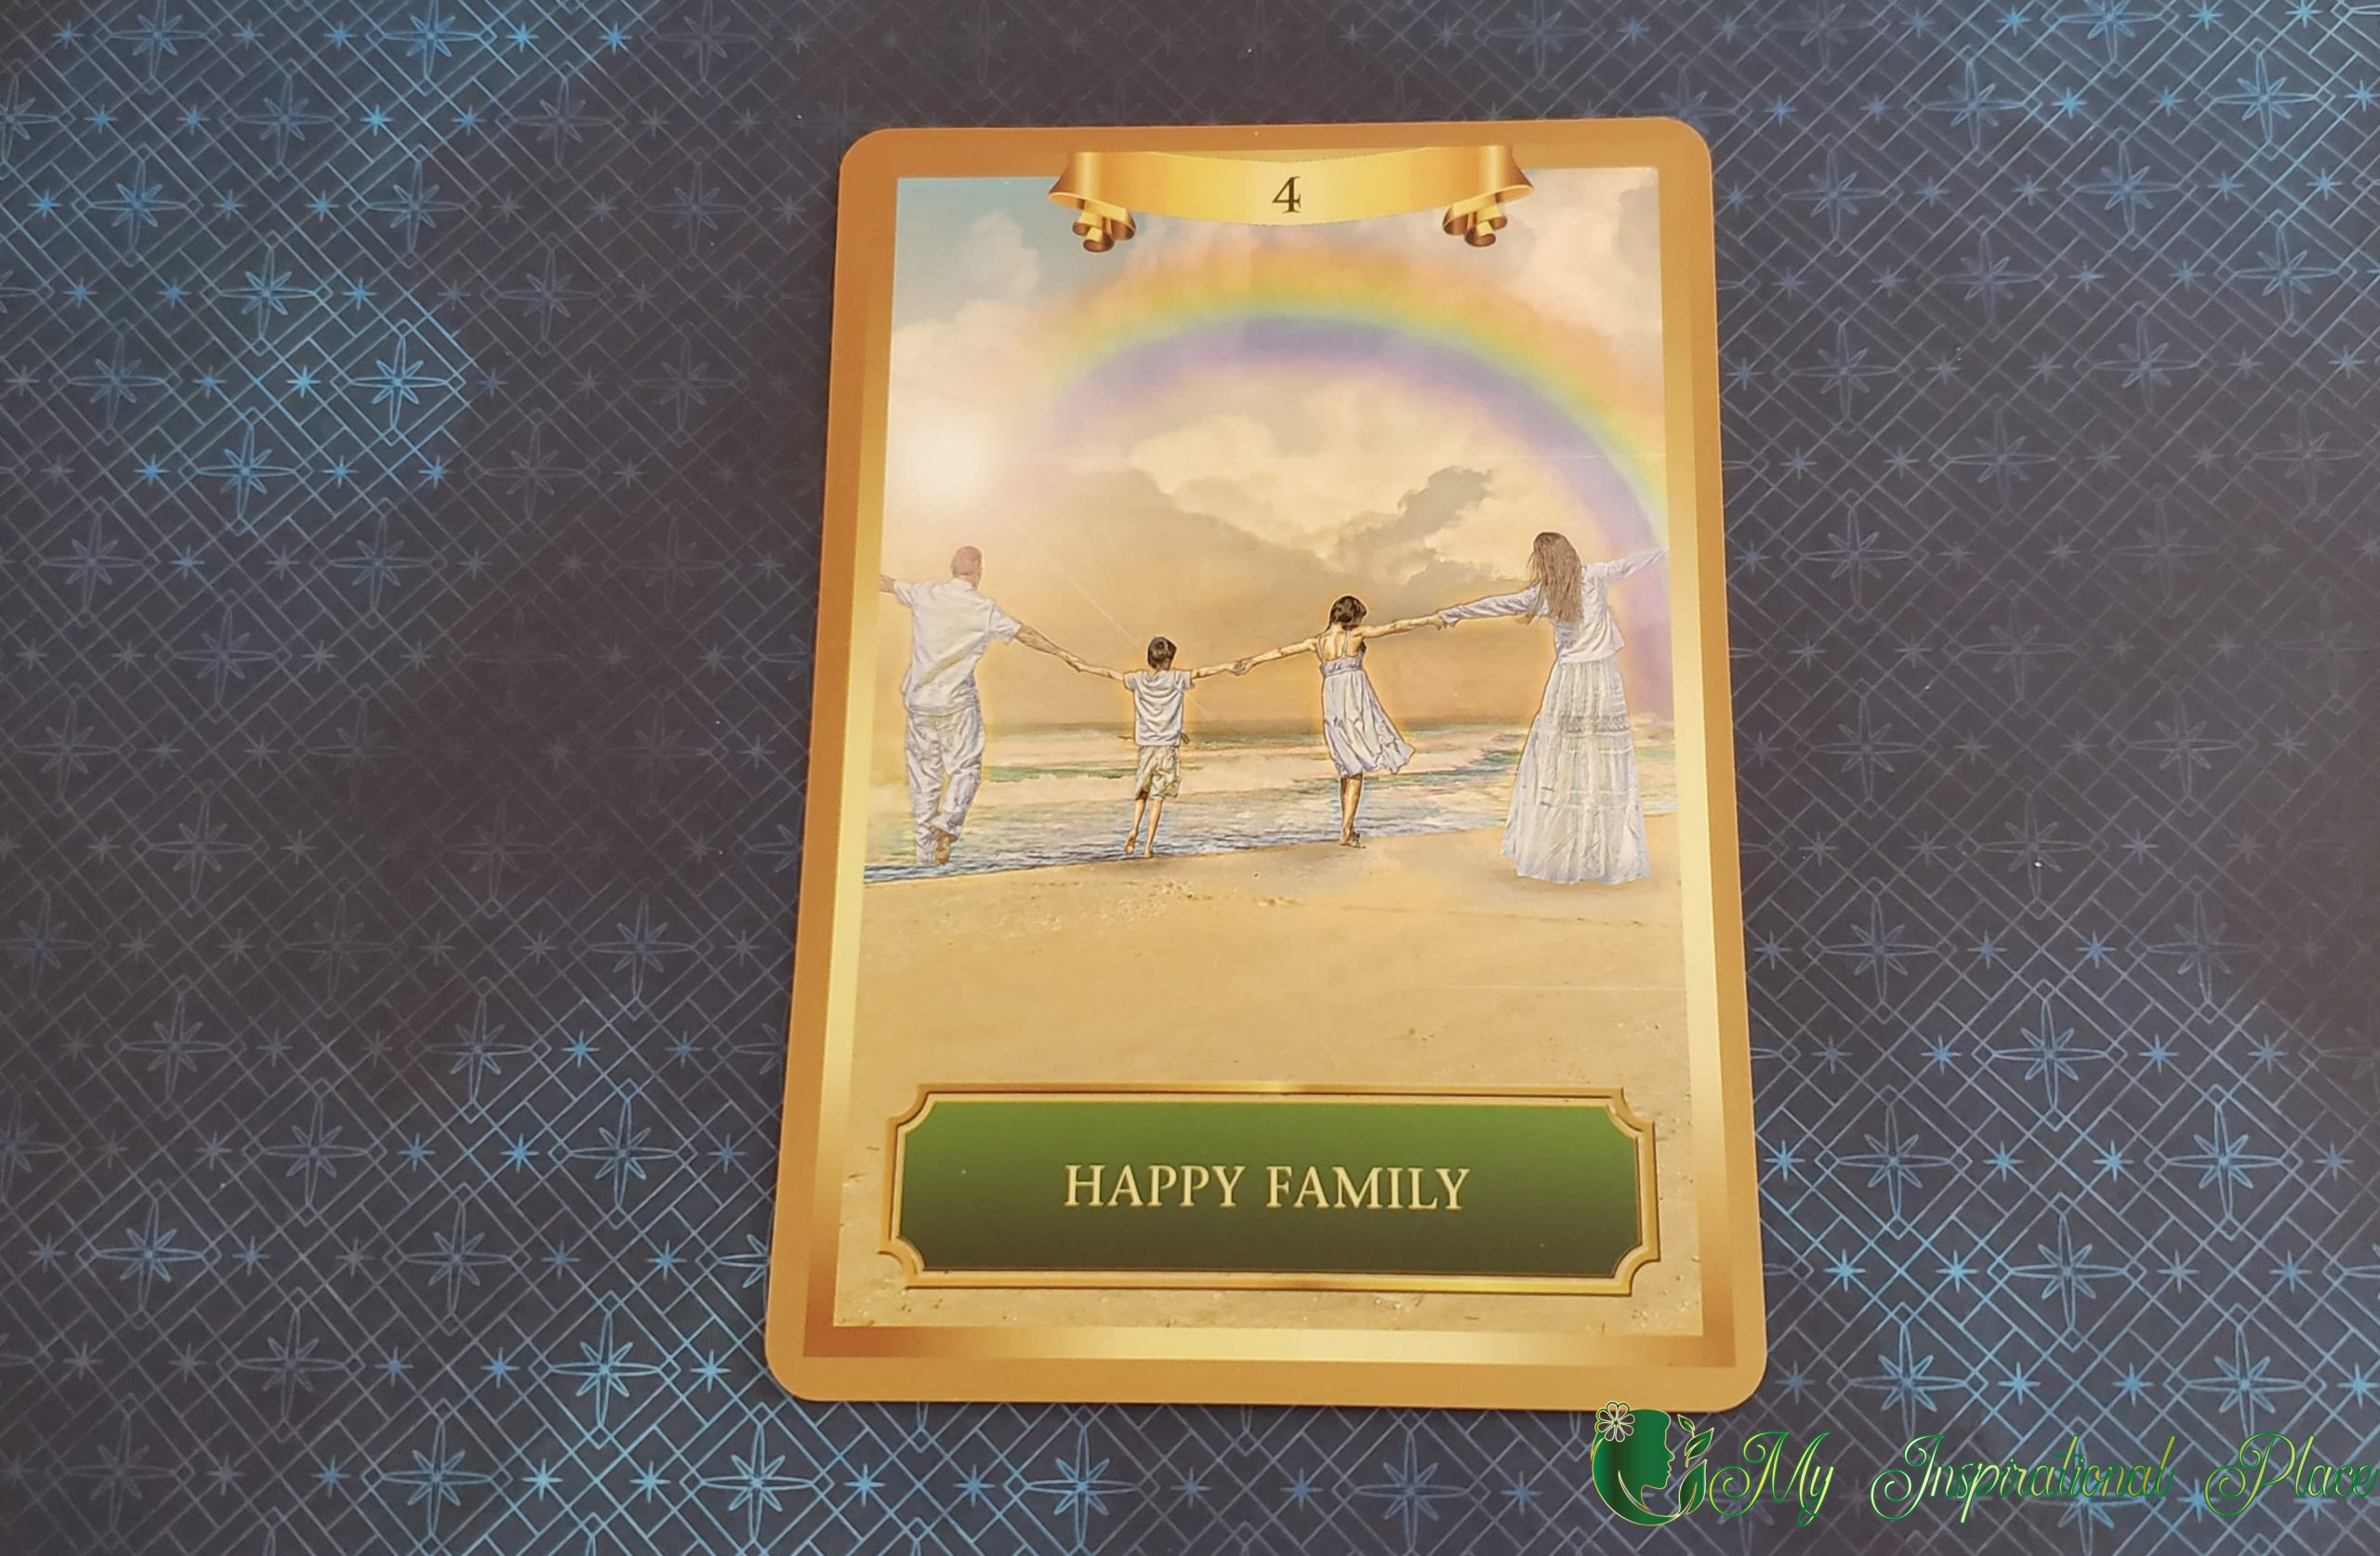 Card of the Day for March 31, 2020 – Happy Family